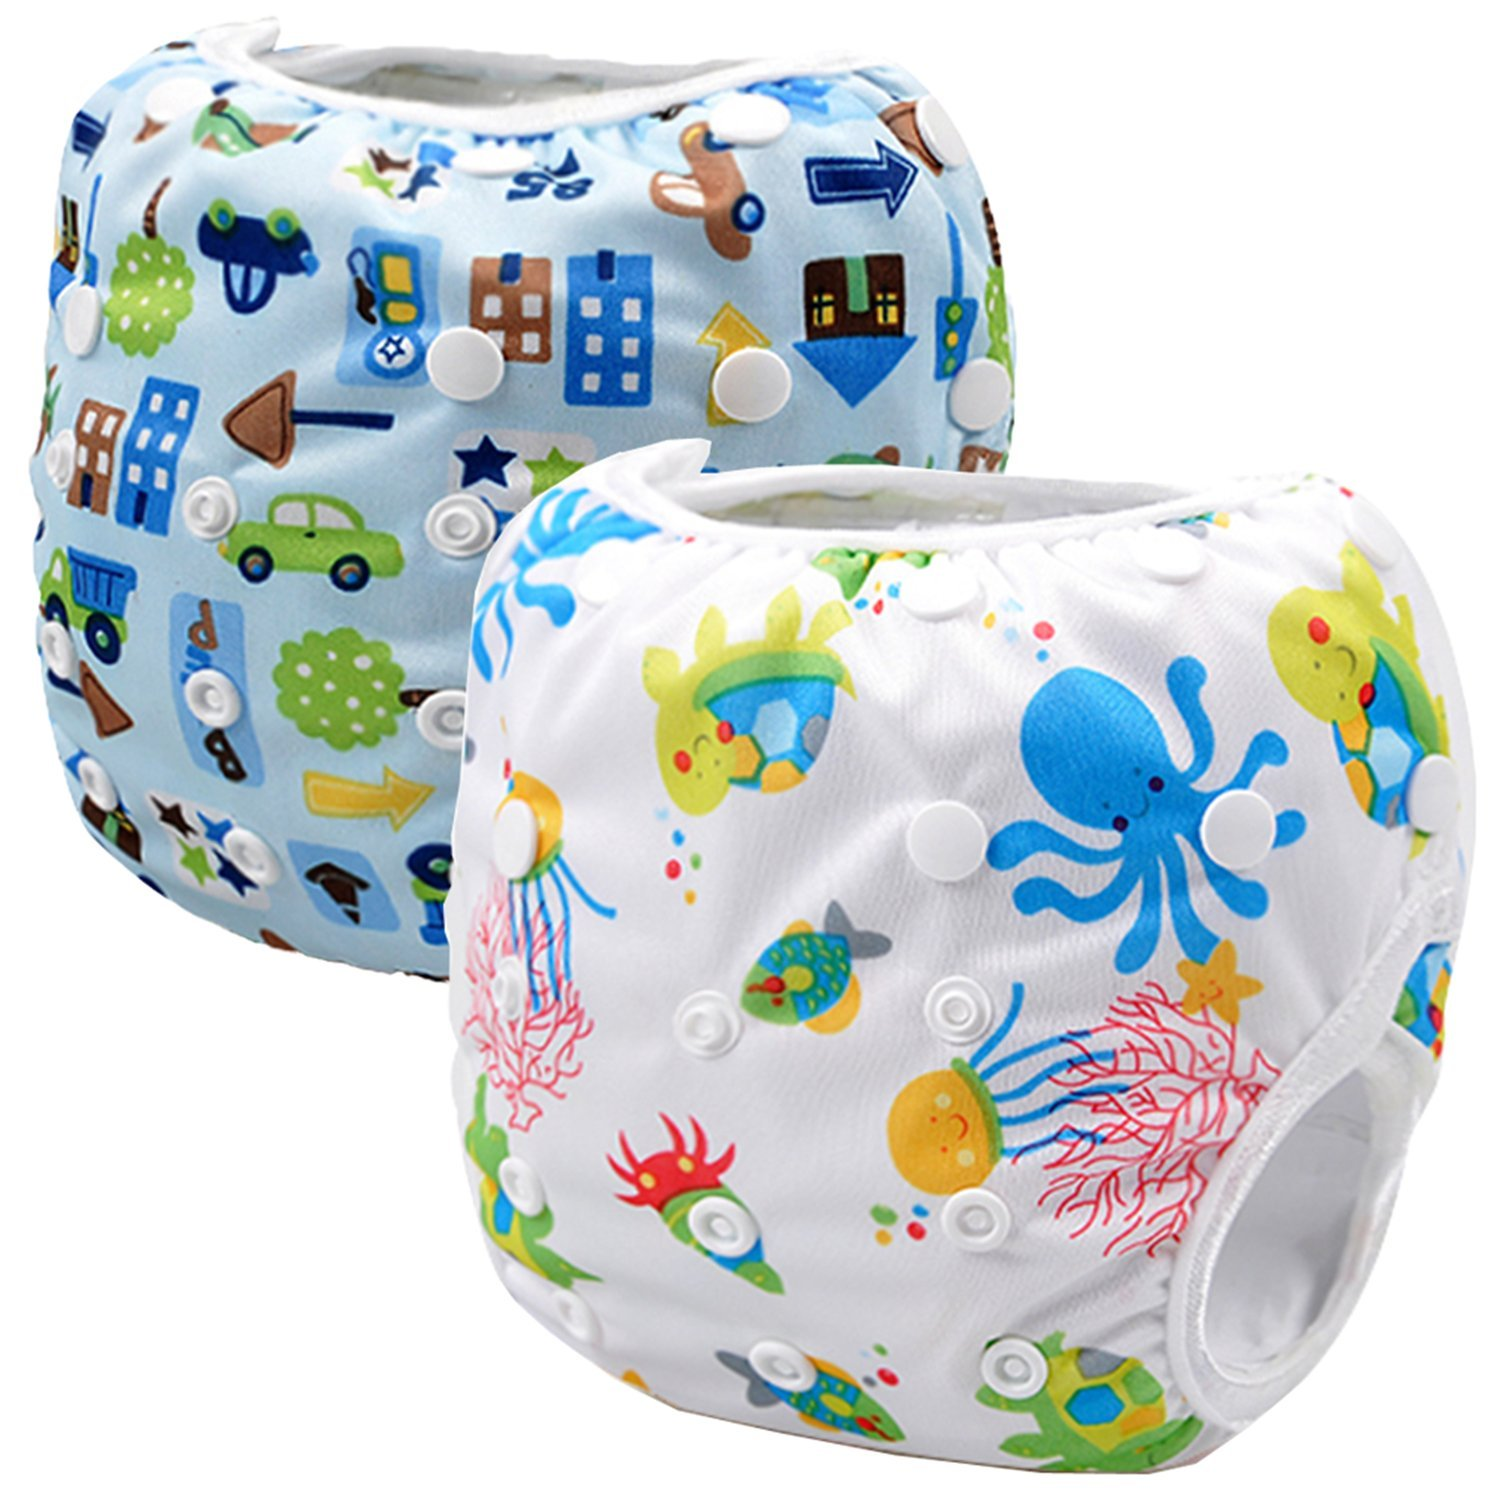 Storeofbaby Swim Diapers Reusable Waterproof Nappies with Adjustable Snaps 0-36 Months Swimpant_75_76_EU